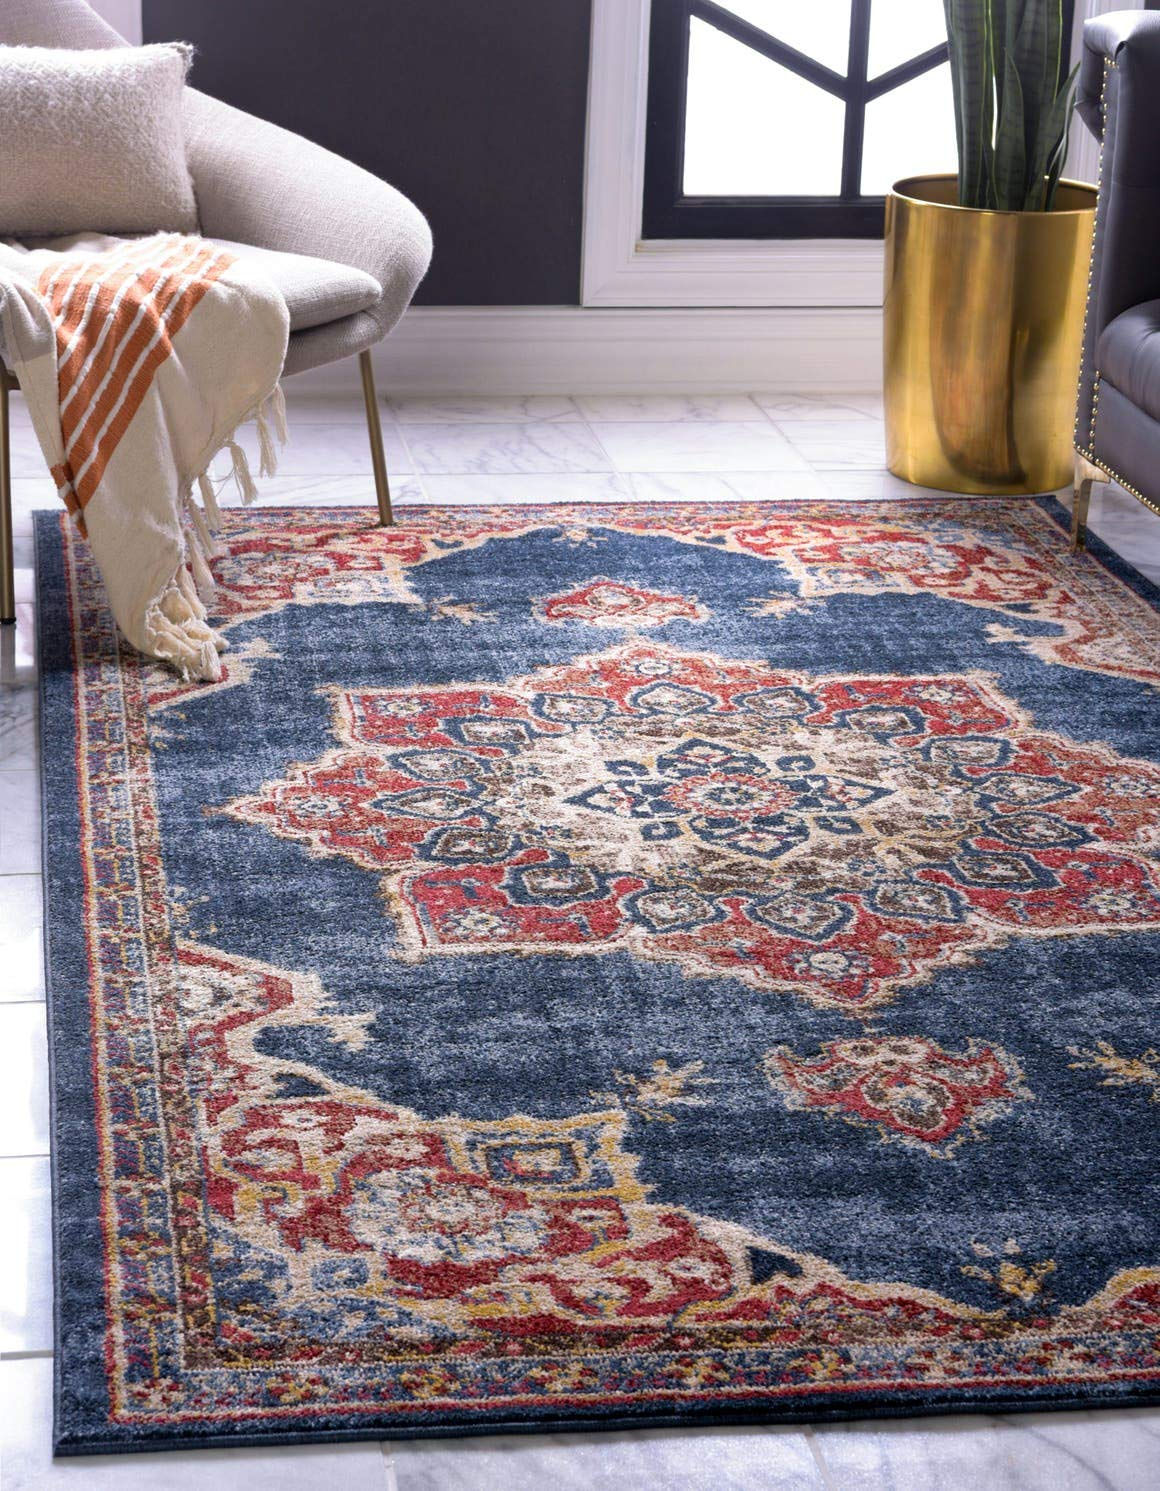 Unique Loom Utopia Collection Traditional Medallion Vintage Warm Tones Dark Blue Area Rug (3' 3 x 5' 3)